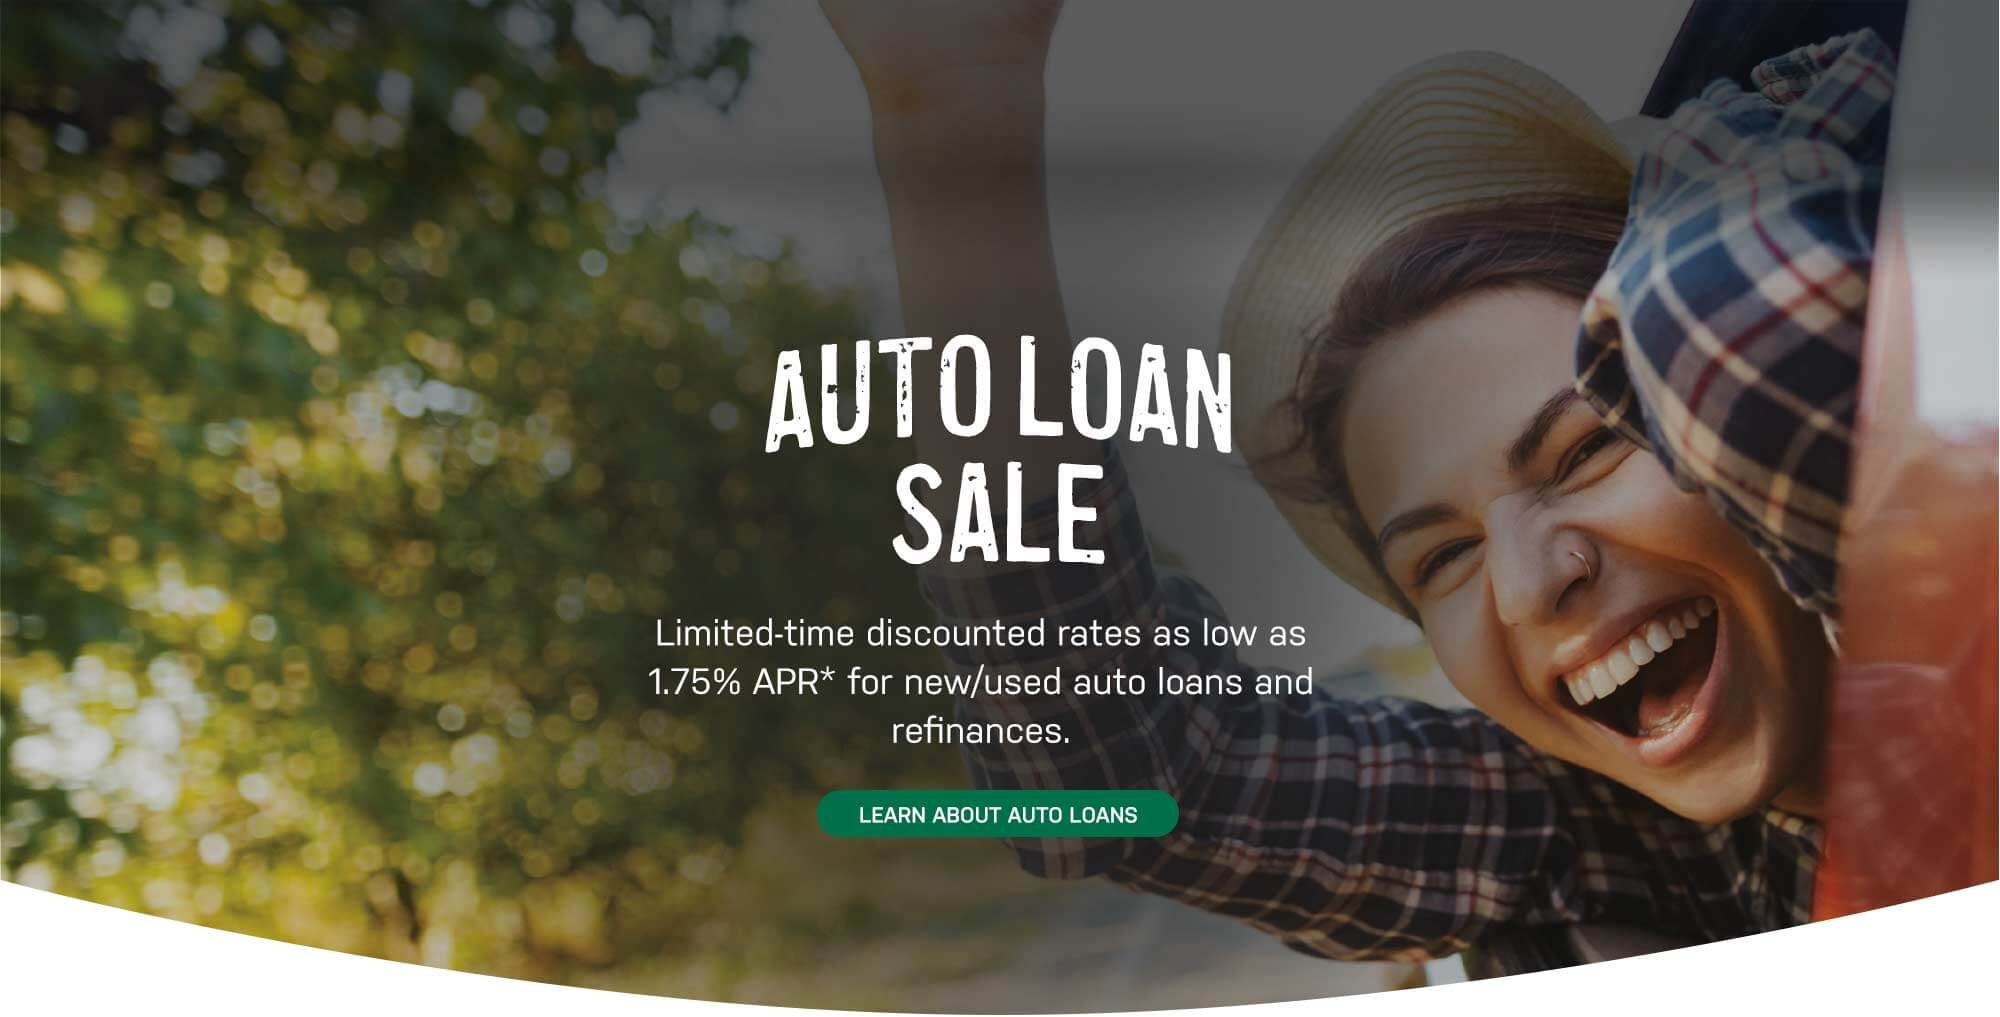 Auto Loan Sale. Limited-time discounted rates as low as 1.75% APR* for new/used auto loans and refinances. Learn About Auto Loans